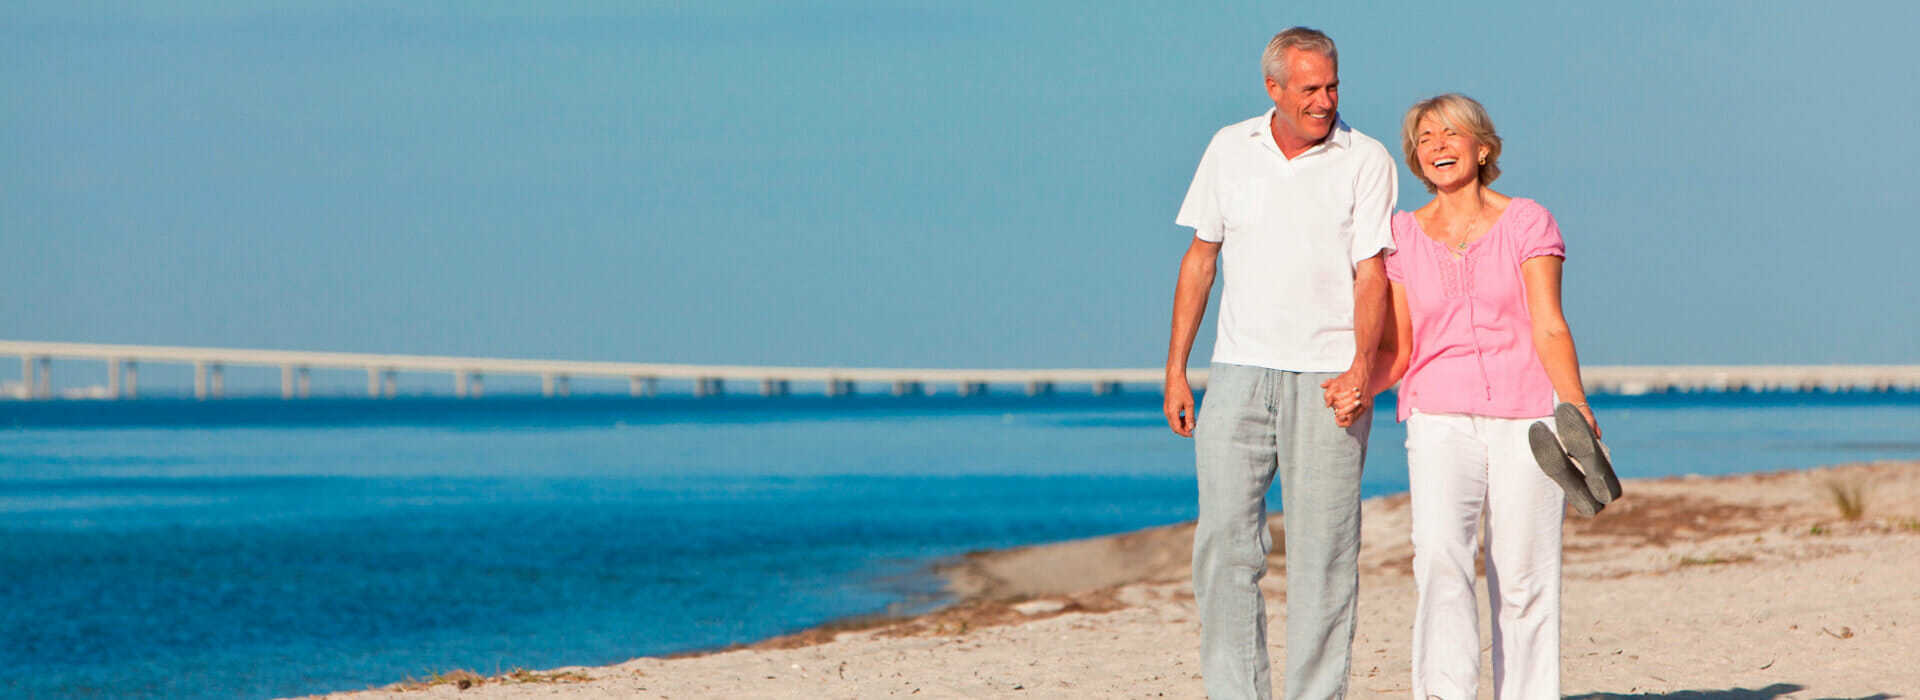 Middle aged couple walking on a sandy beach on the edge of a bay, with a bridge in the background. Healthy veins and blood vessels in elderly people.